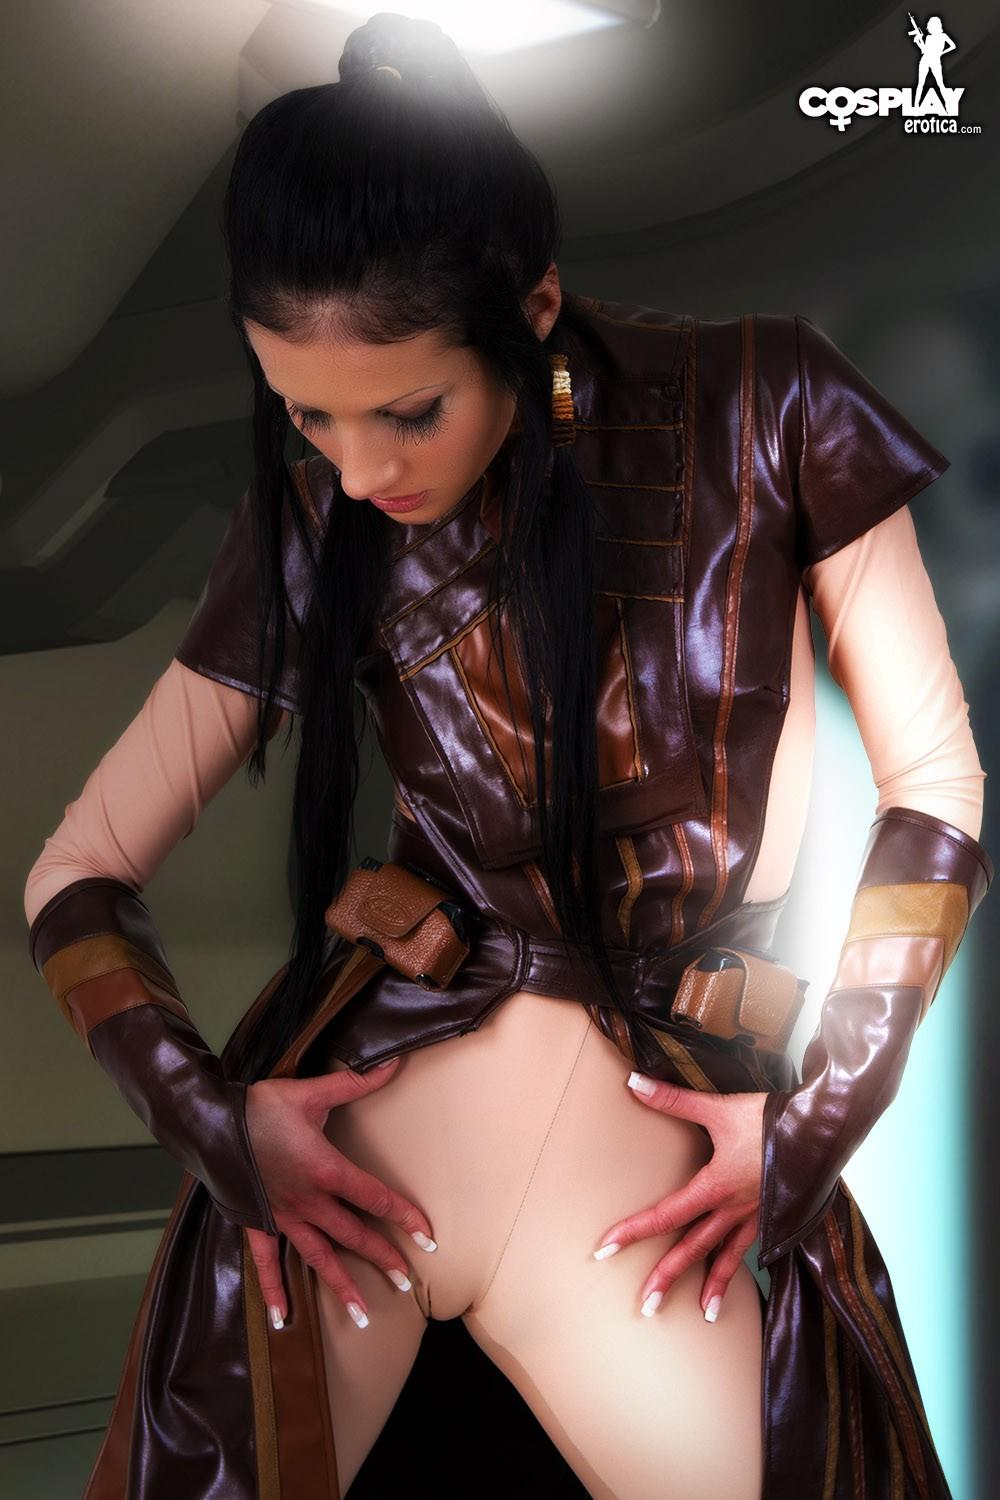 Star wars cosplay porn tubes adult galleries